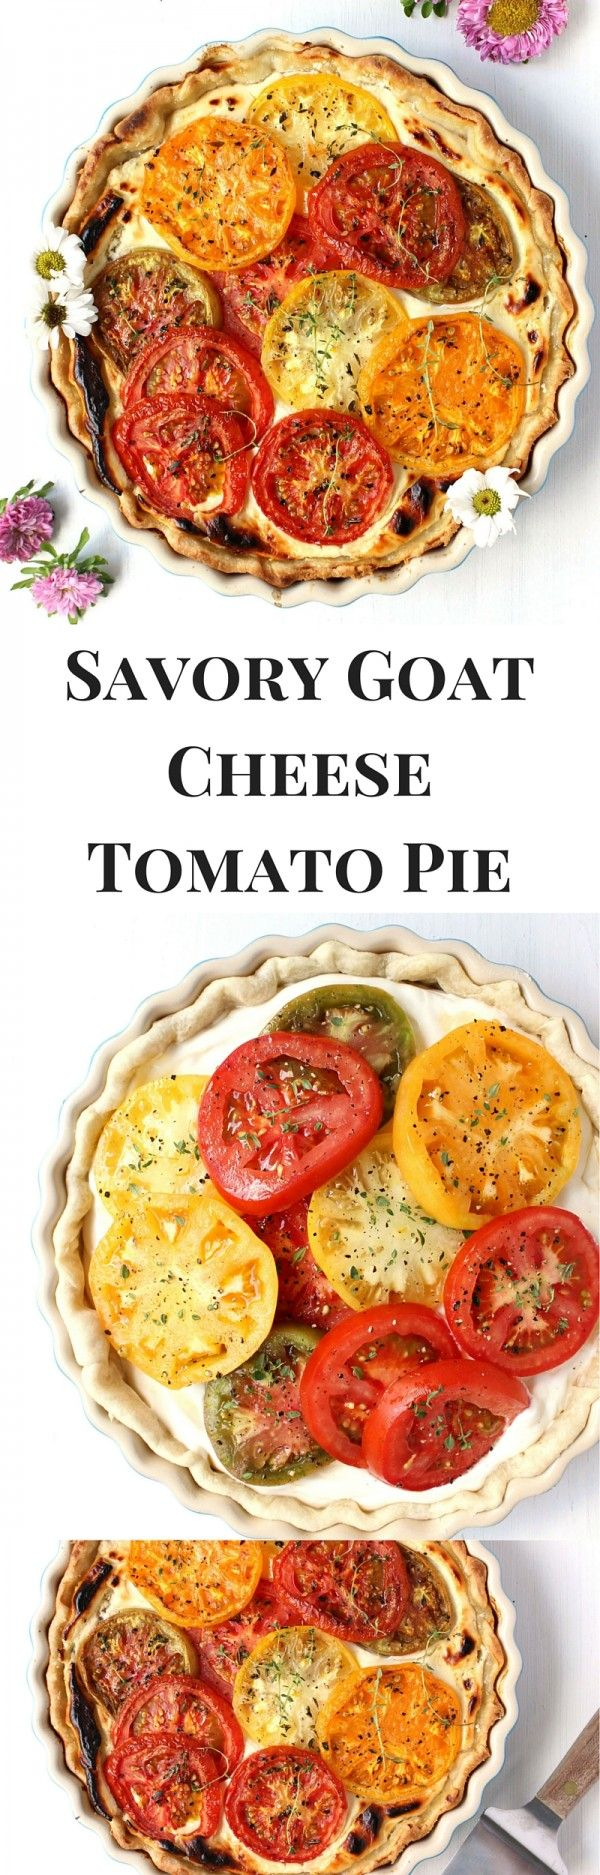 Get the recipe Savory Goat Cheese Tomato Pie @recipes_to_go